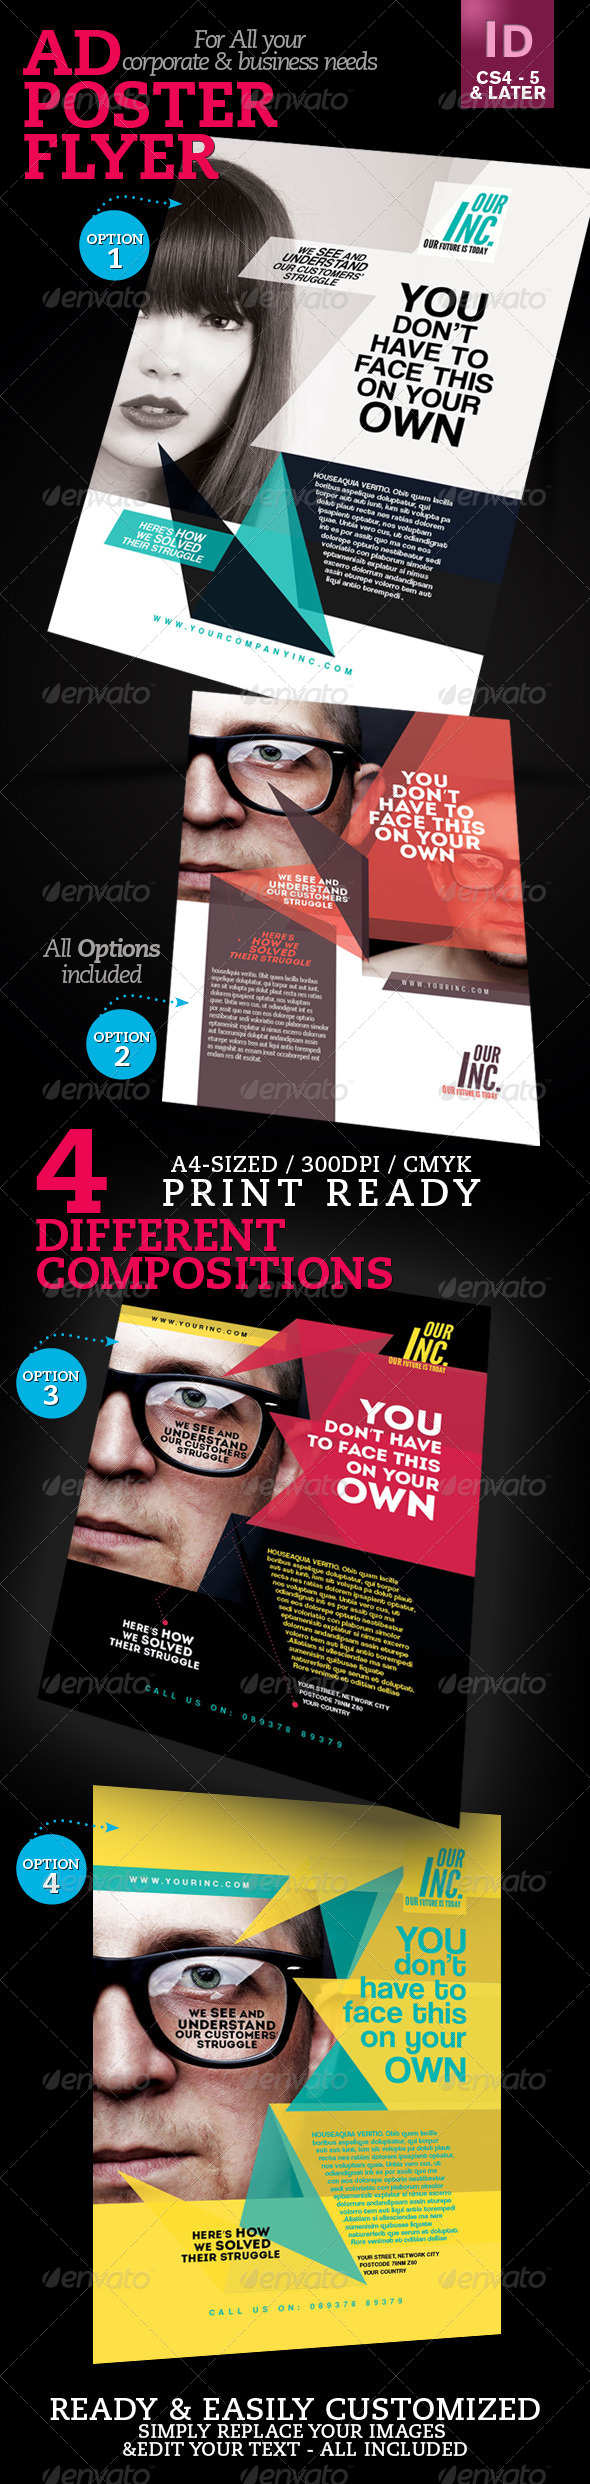 GraphicRiver Corporate Ad Flyer Poster V1 4094869